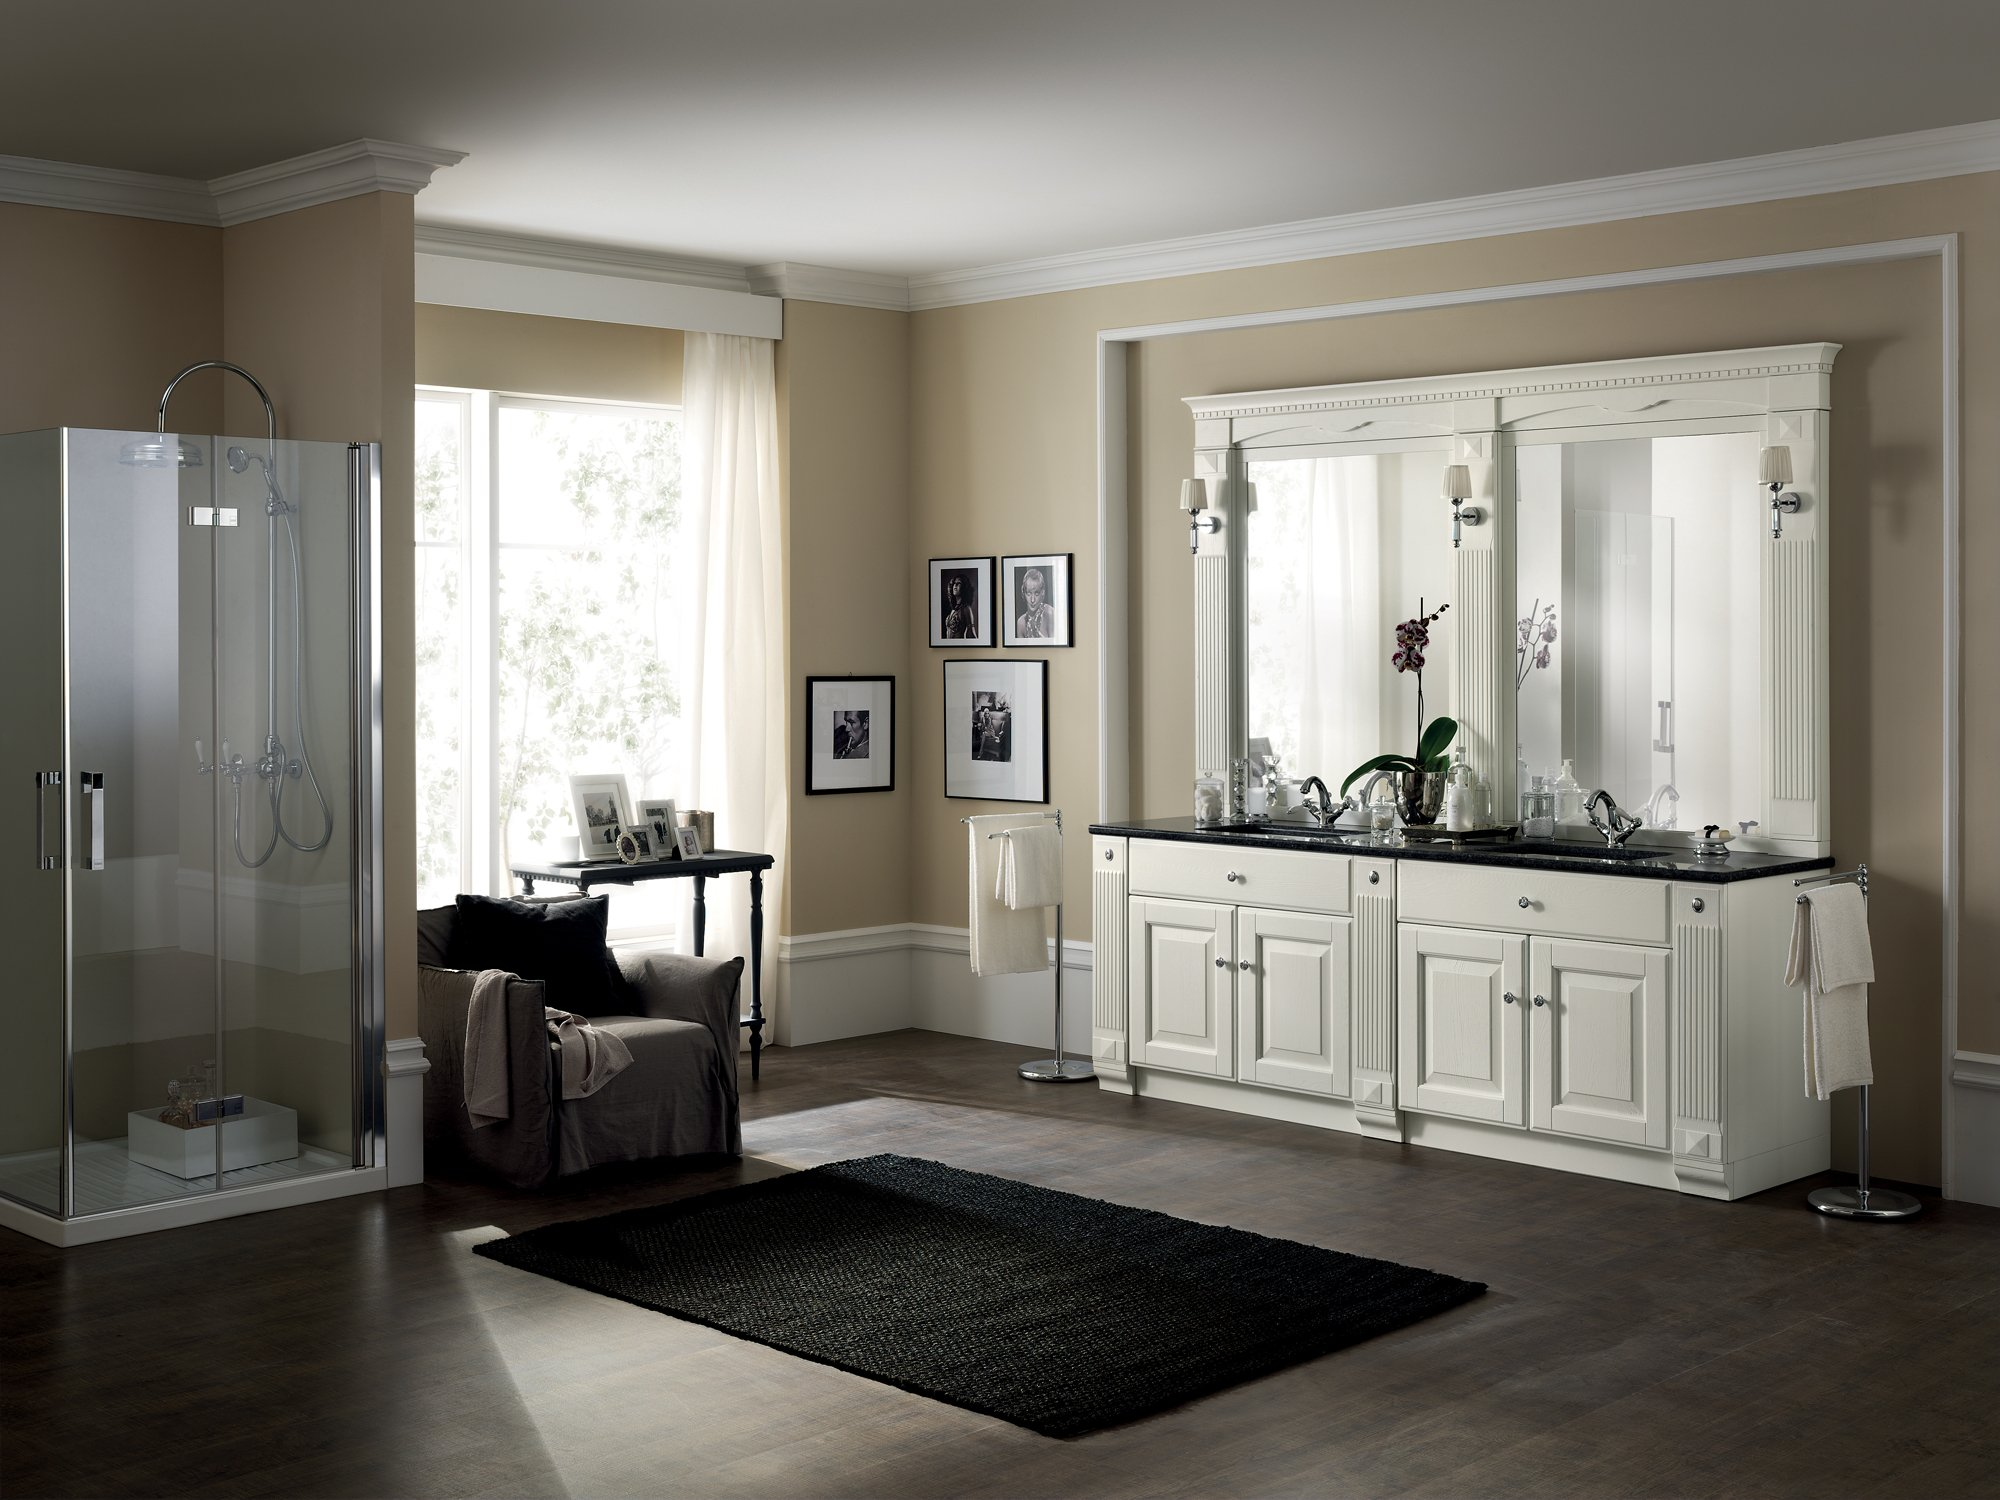 Arredo bagno completo baltimora by scavolini bathrooms for Arredo bagno design